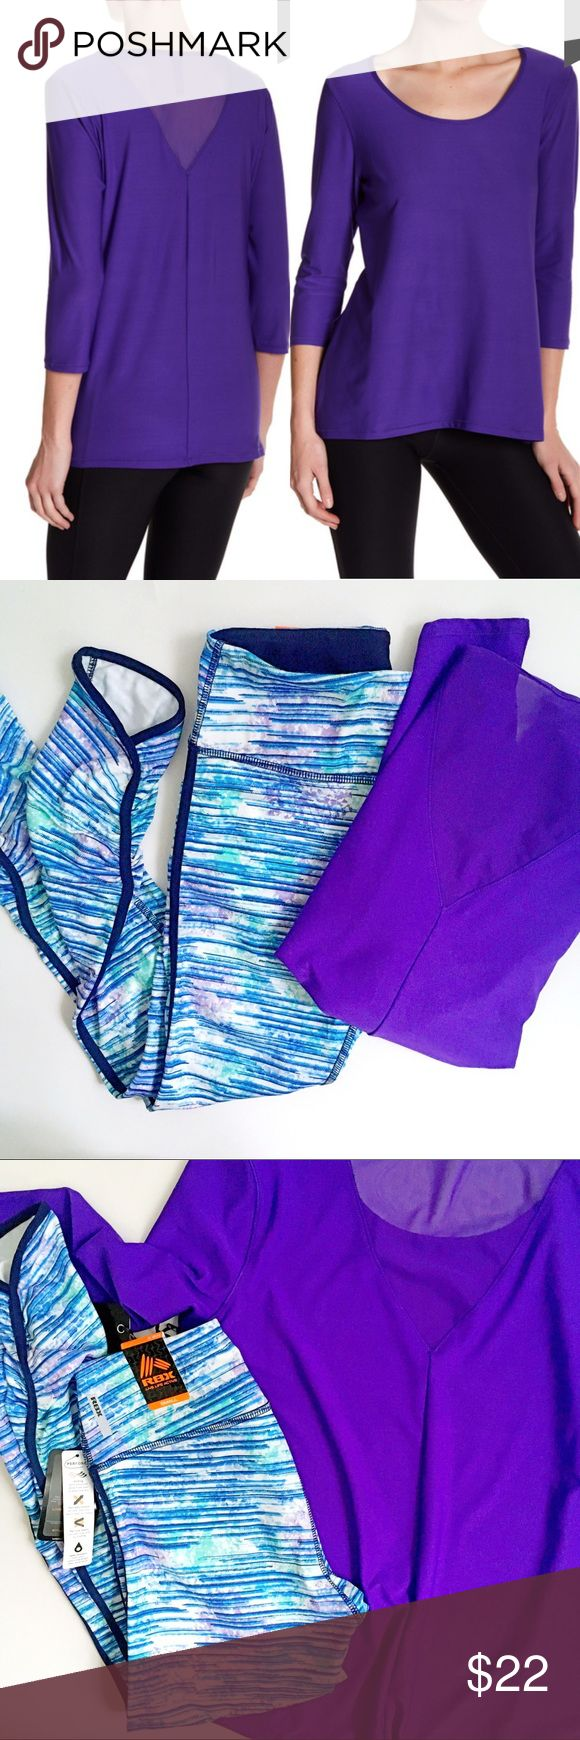 ABS Allen Schwartz moisture wick back mesh yoga NWT ABS by Allen Schwartz moisture wicking yoga | workout | lifestyle top with 3/4 sleeves and mesh back. Size small. 90% polyester 10% spandex ABS Allen Schwartz Tops